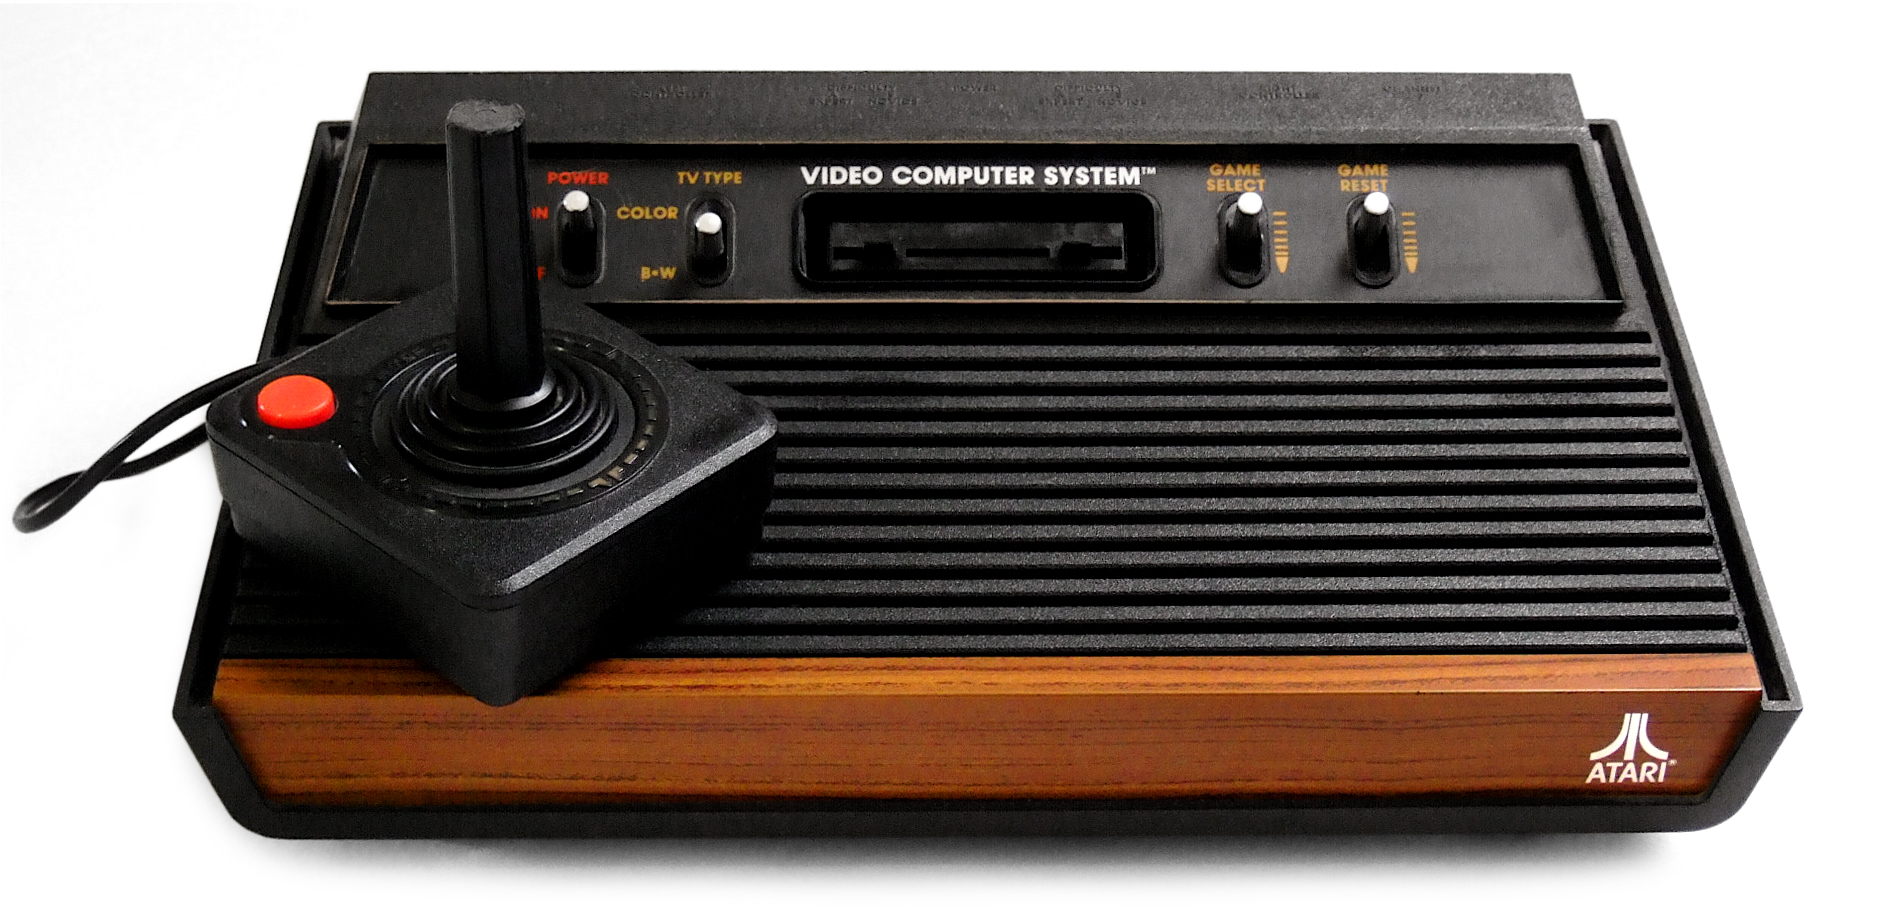 Atari 2600 - Simple English Wikipedia, the free encyclopedia